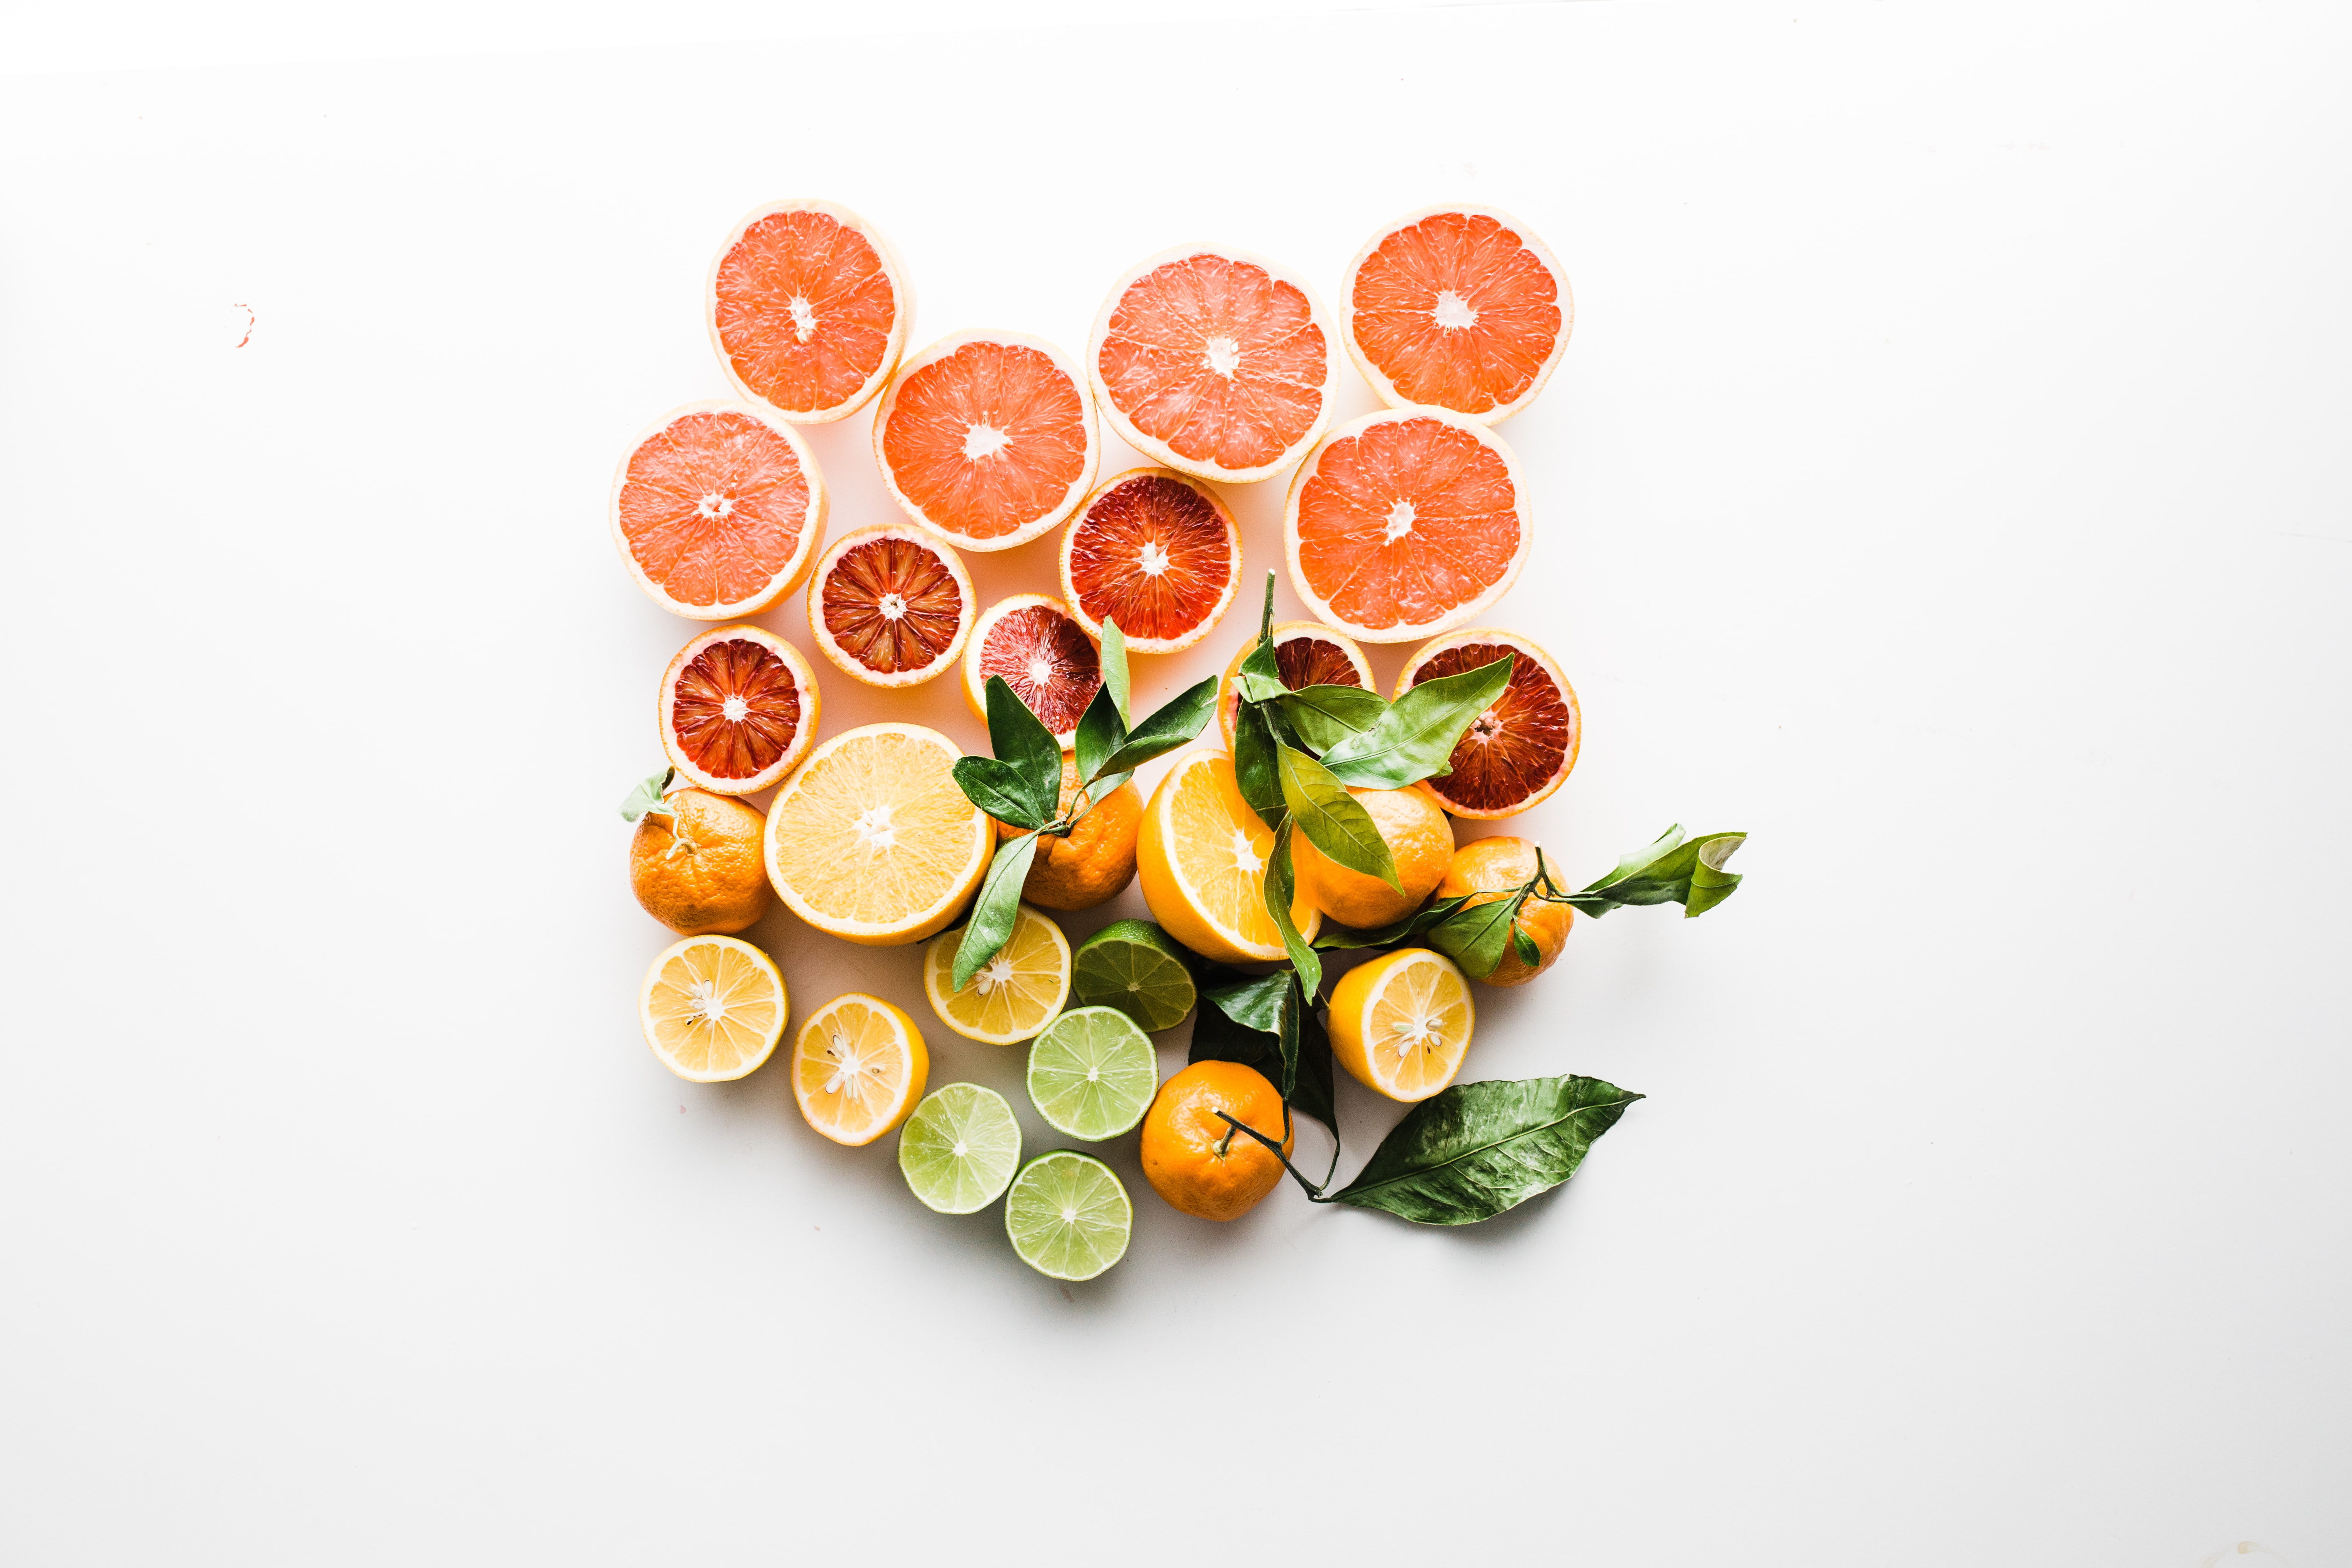 Grapefruit contains powerful terpenes and can be tart or sweet